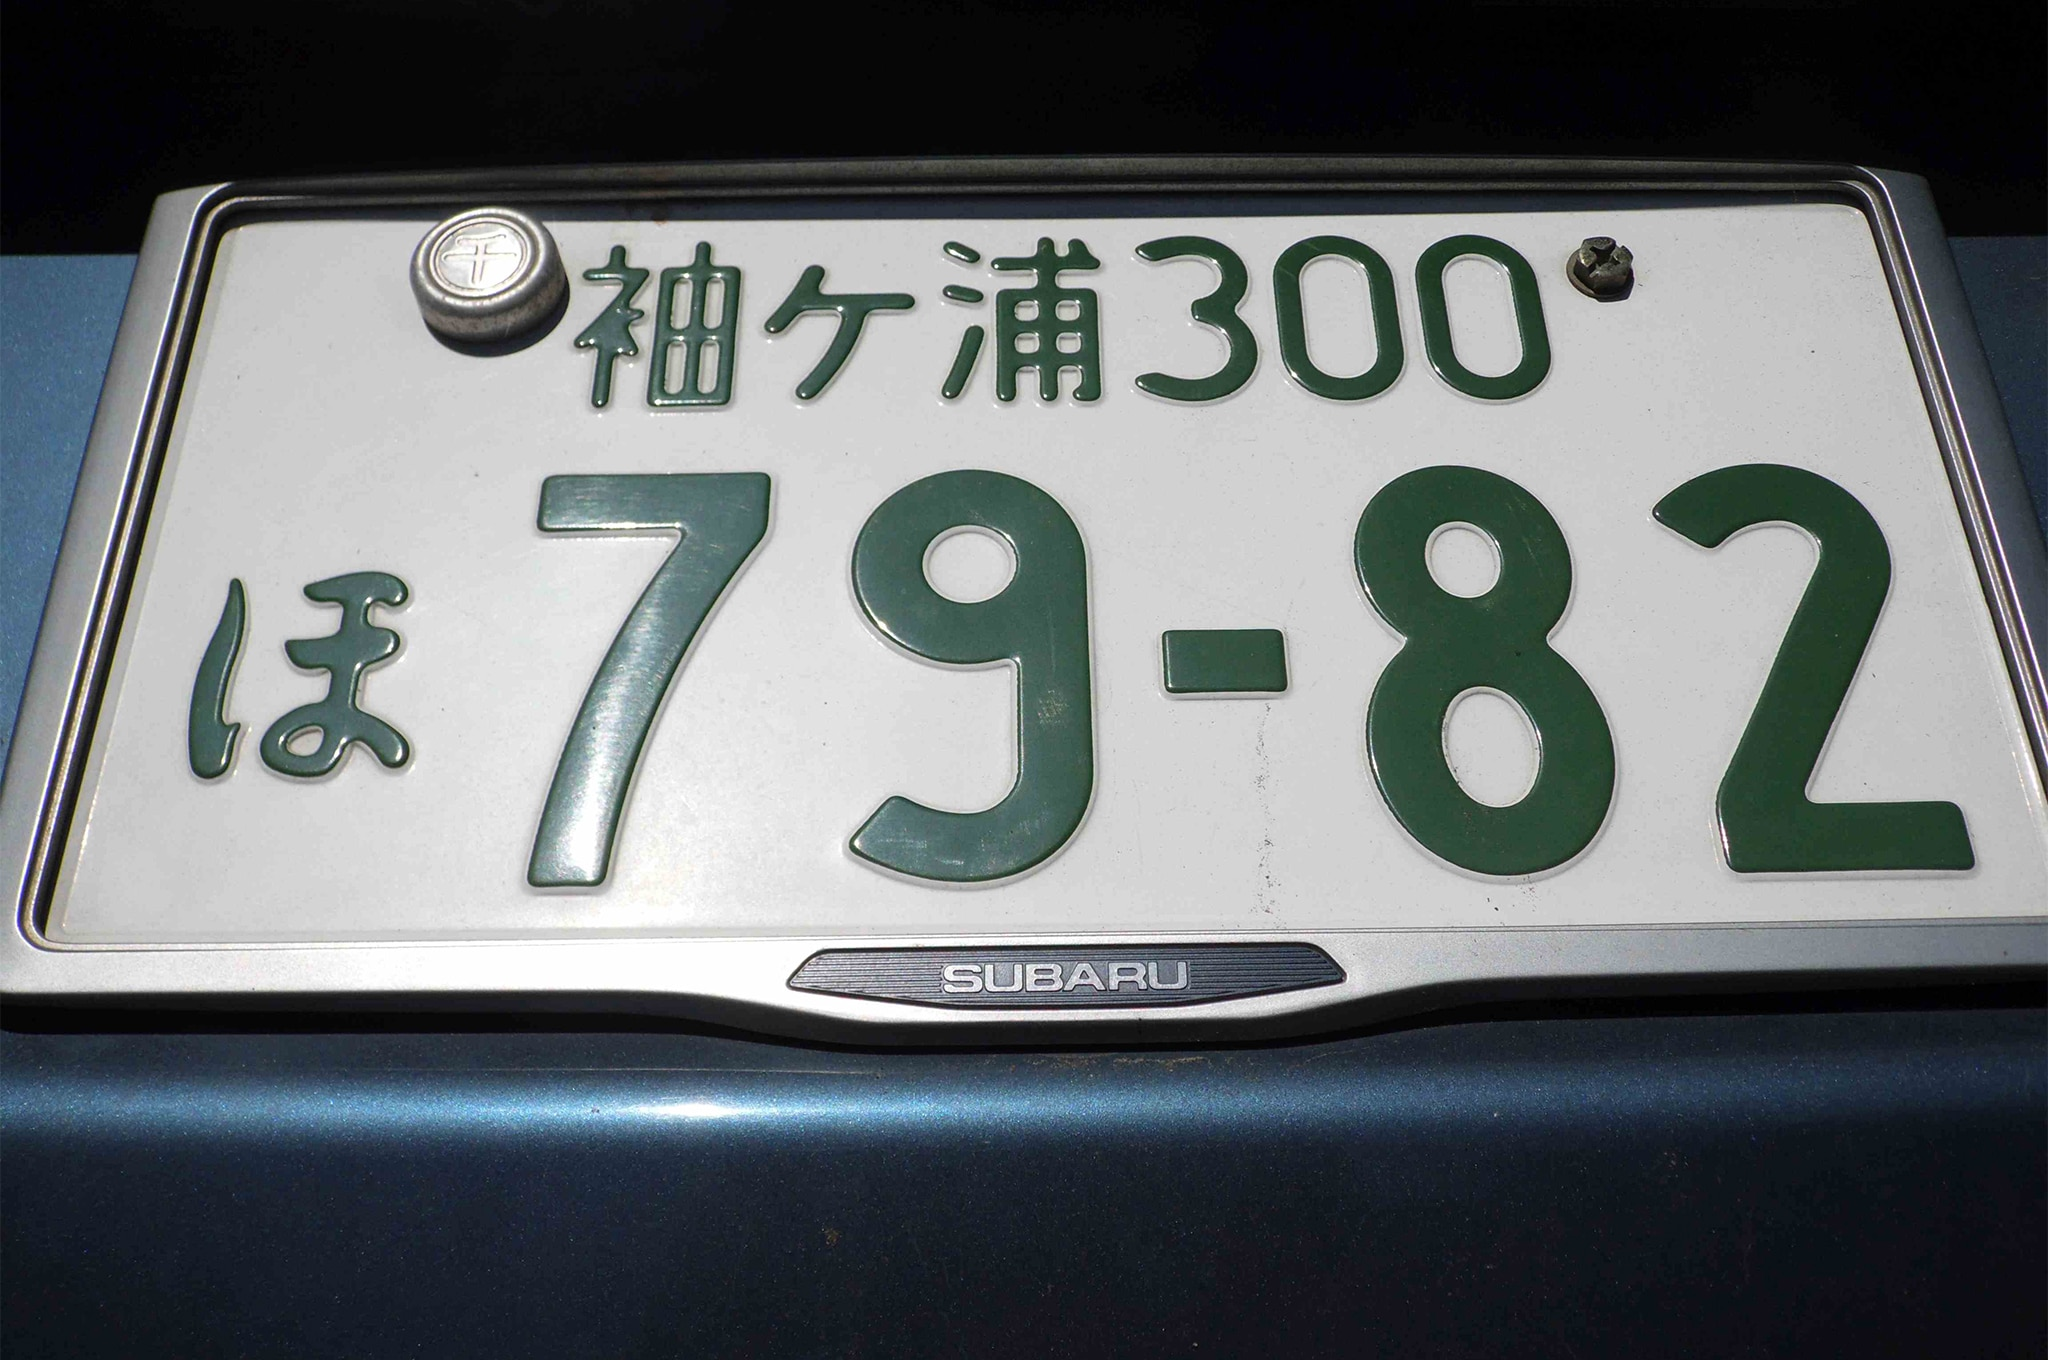 Pity, asian car plates really